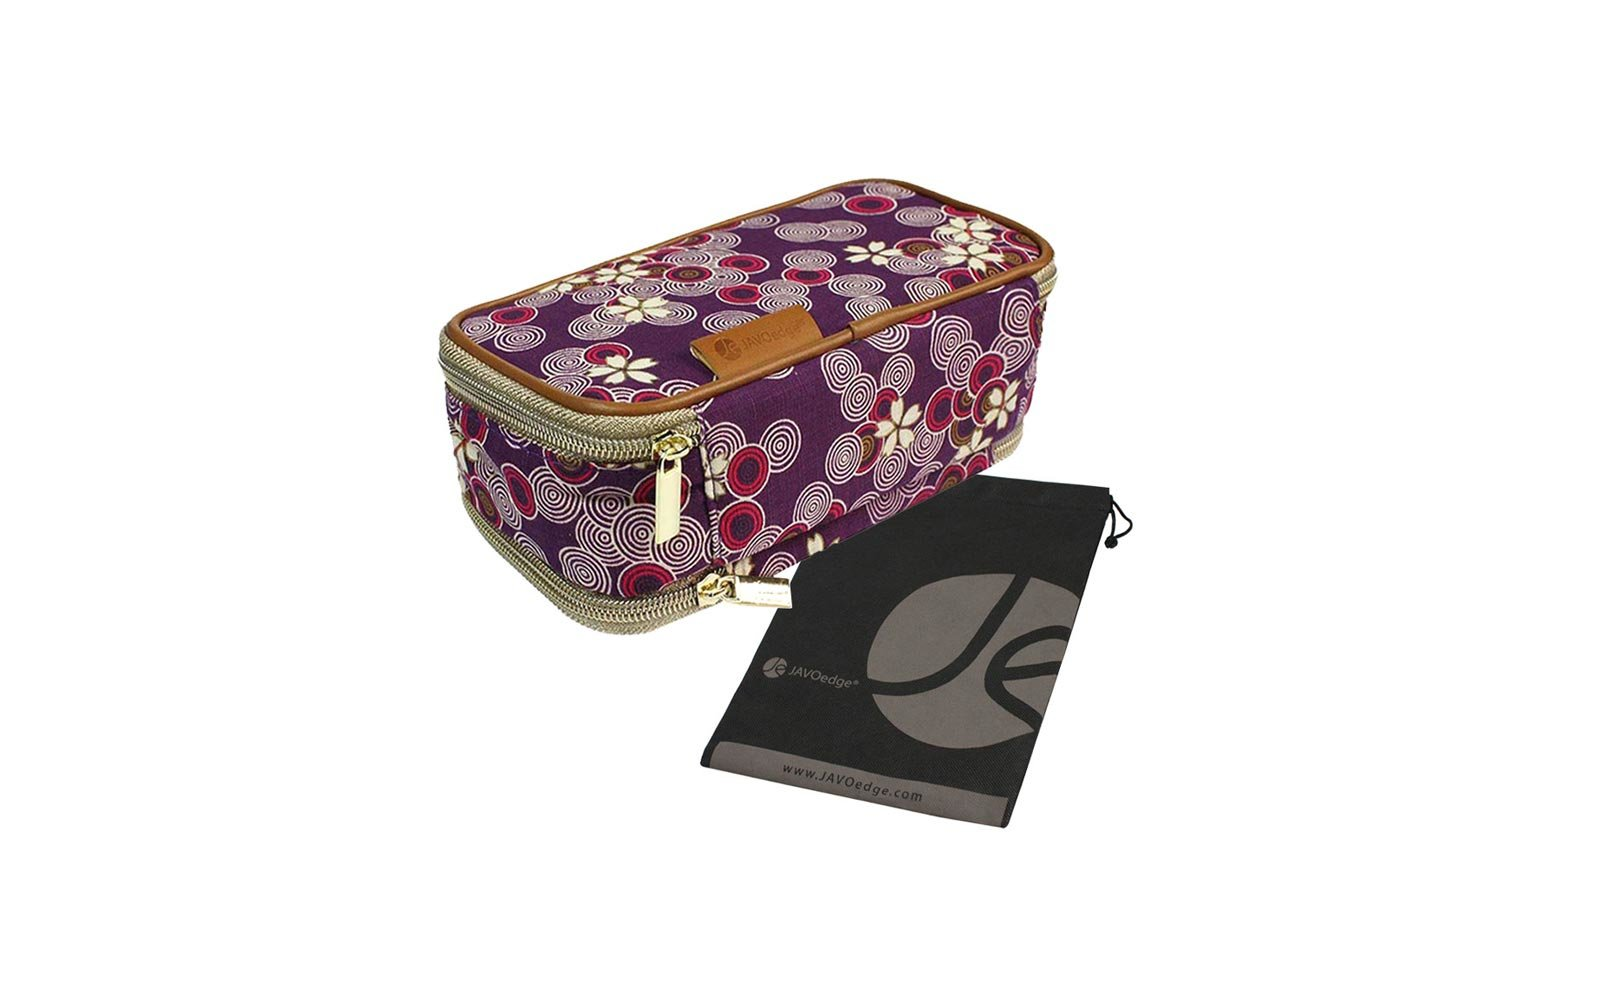 3989469855 Week  JAVOedge Travel Organizer in Cherry Blossom Purple